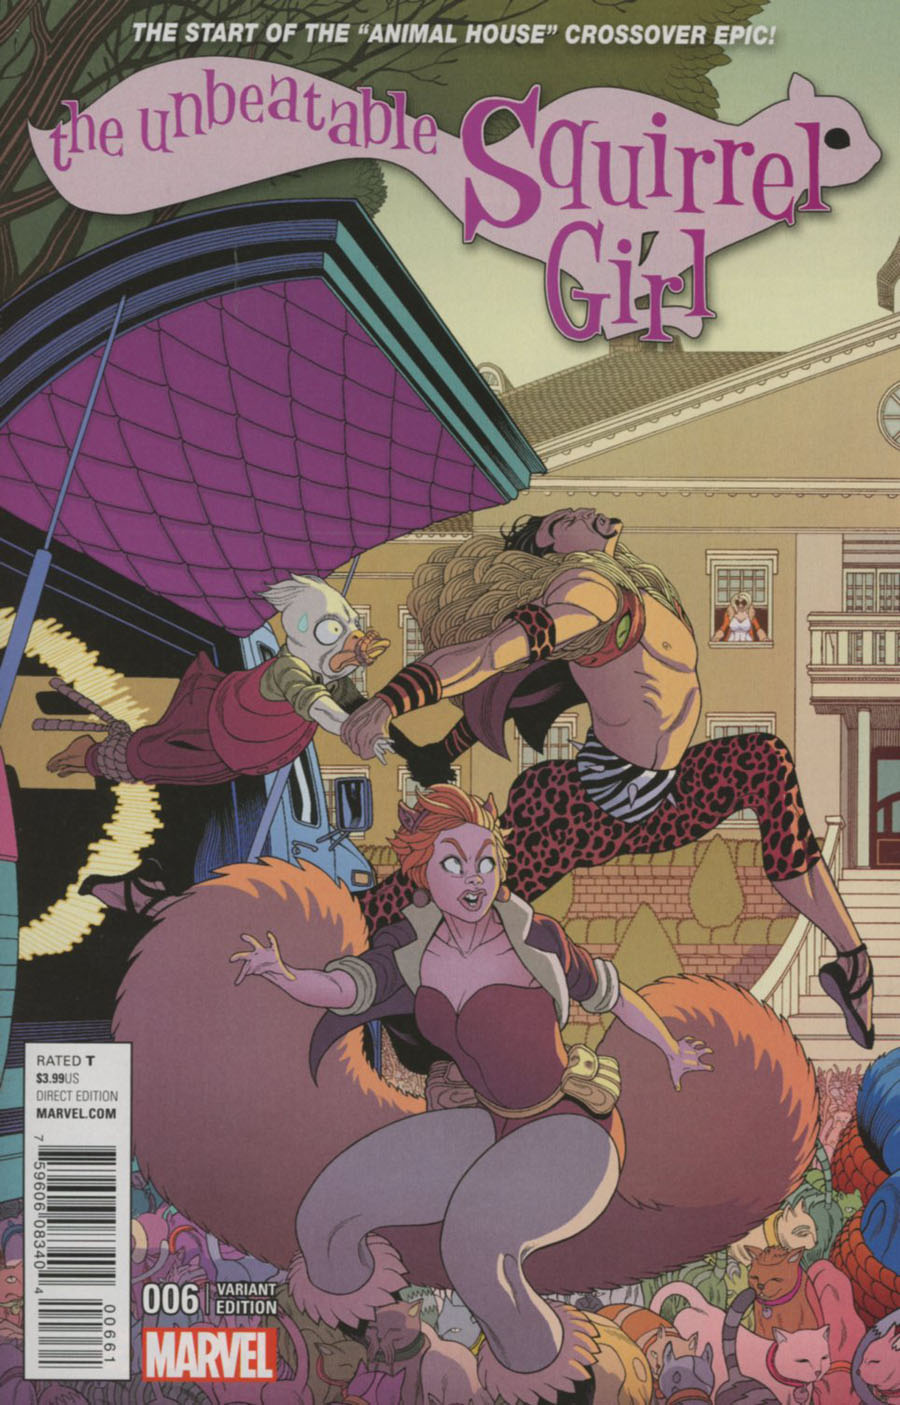 Unbeatable Squirrel Girl Vol 2 #6 Cover C Variant Tradd Moore Connecting A Cover (Animal House Part 1)